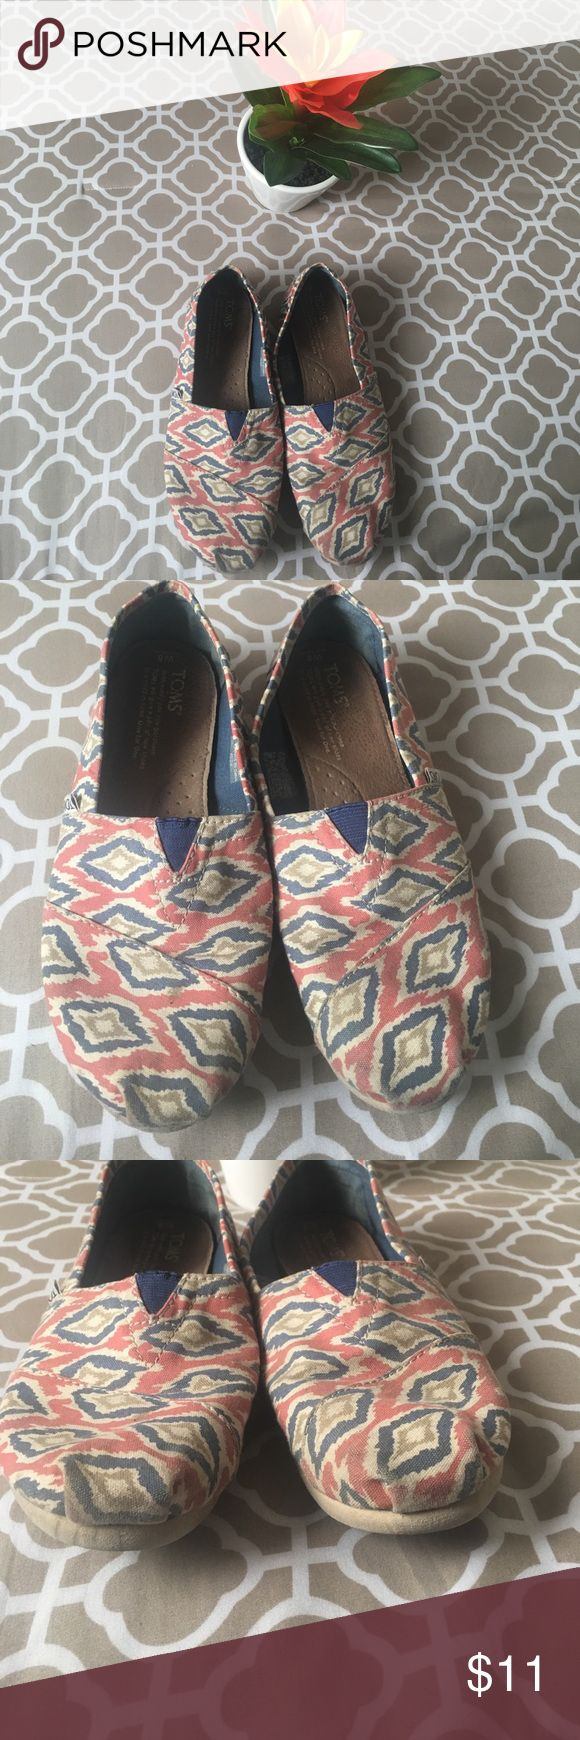 Super Cute Toms ! 💓 In great condition! Just need a little clean ! 💓 Toms Shoes Flats & Loafers